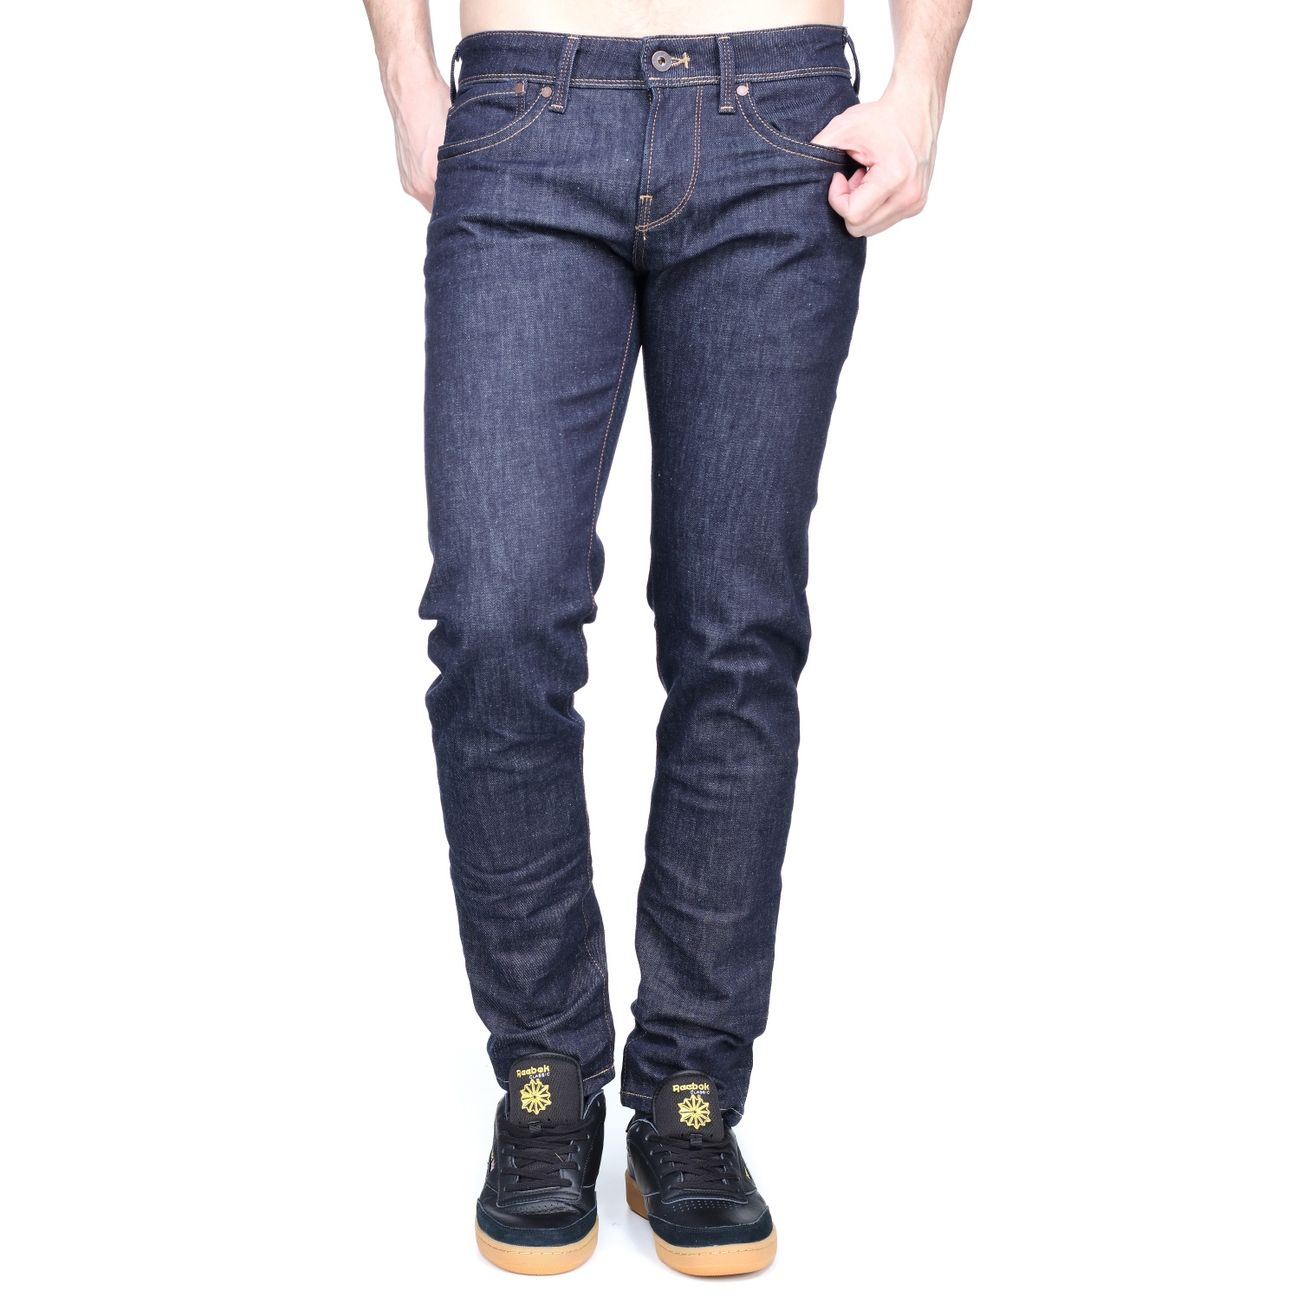 a7bfa60fcd13 Mode- Lifestyle homme PEPE JEANS Jeans Pepe Jeans Hatch Pm200823h05 Bleu